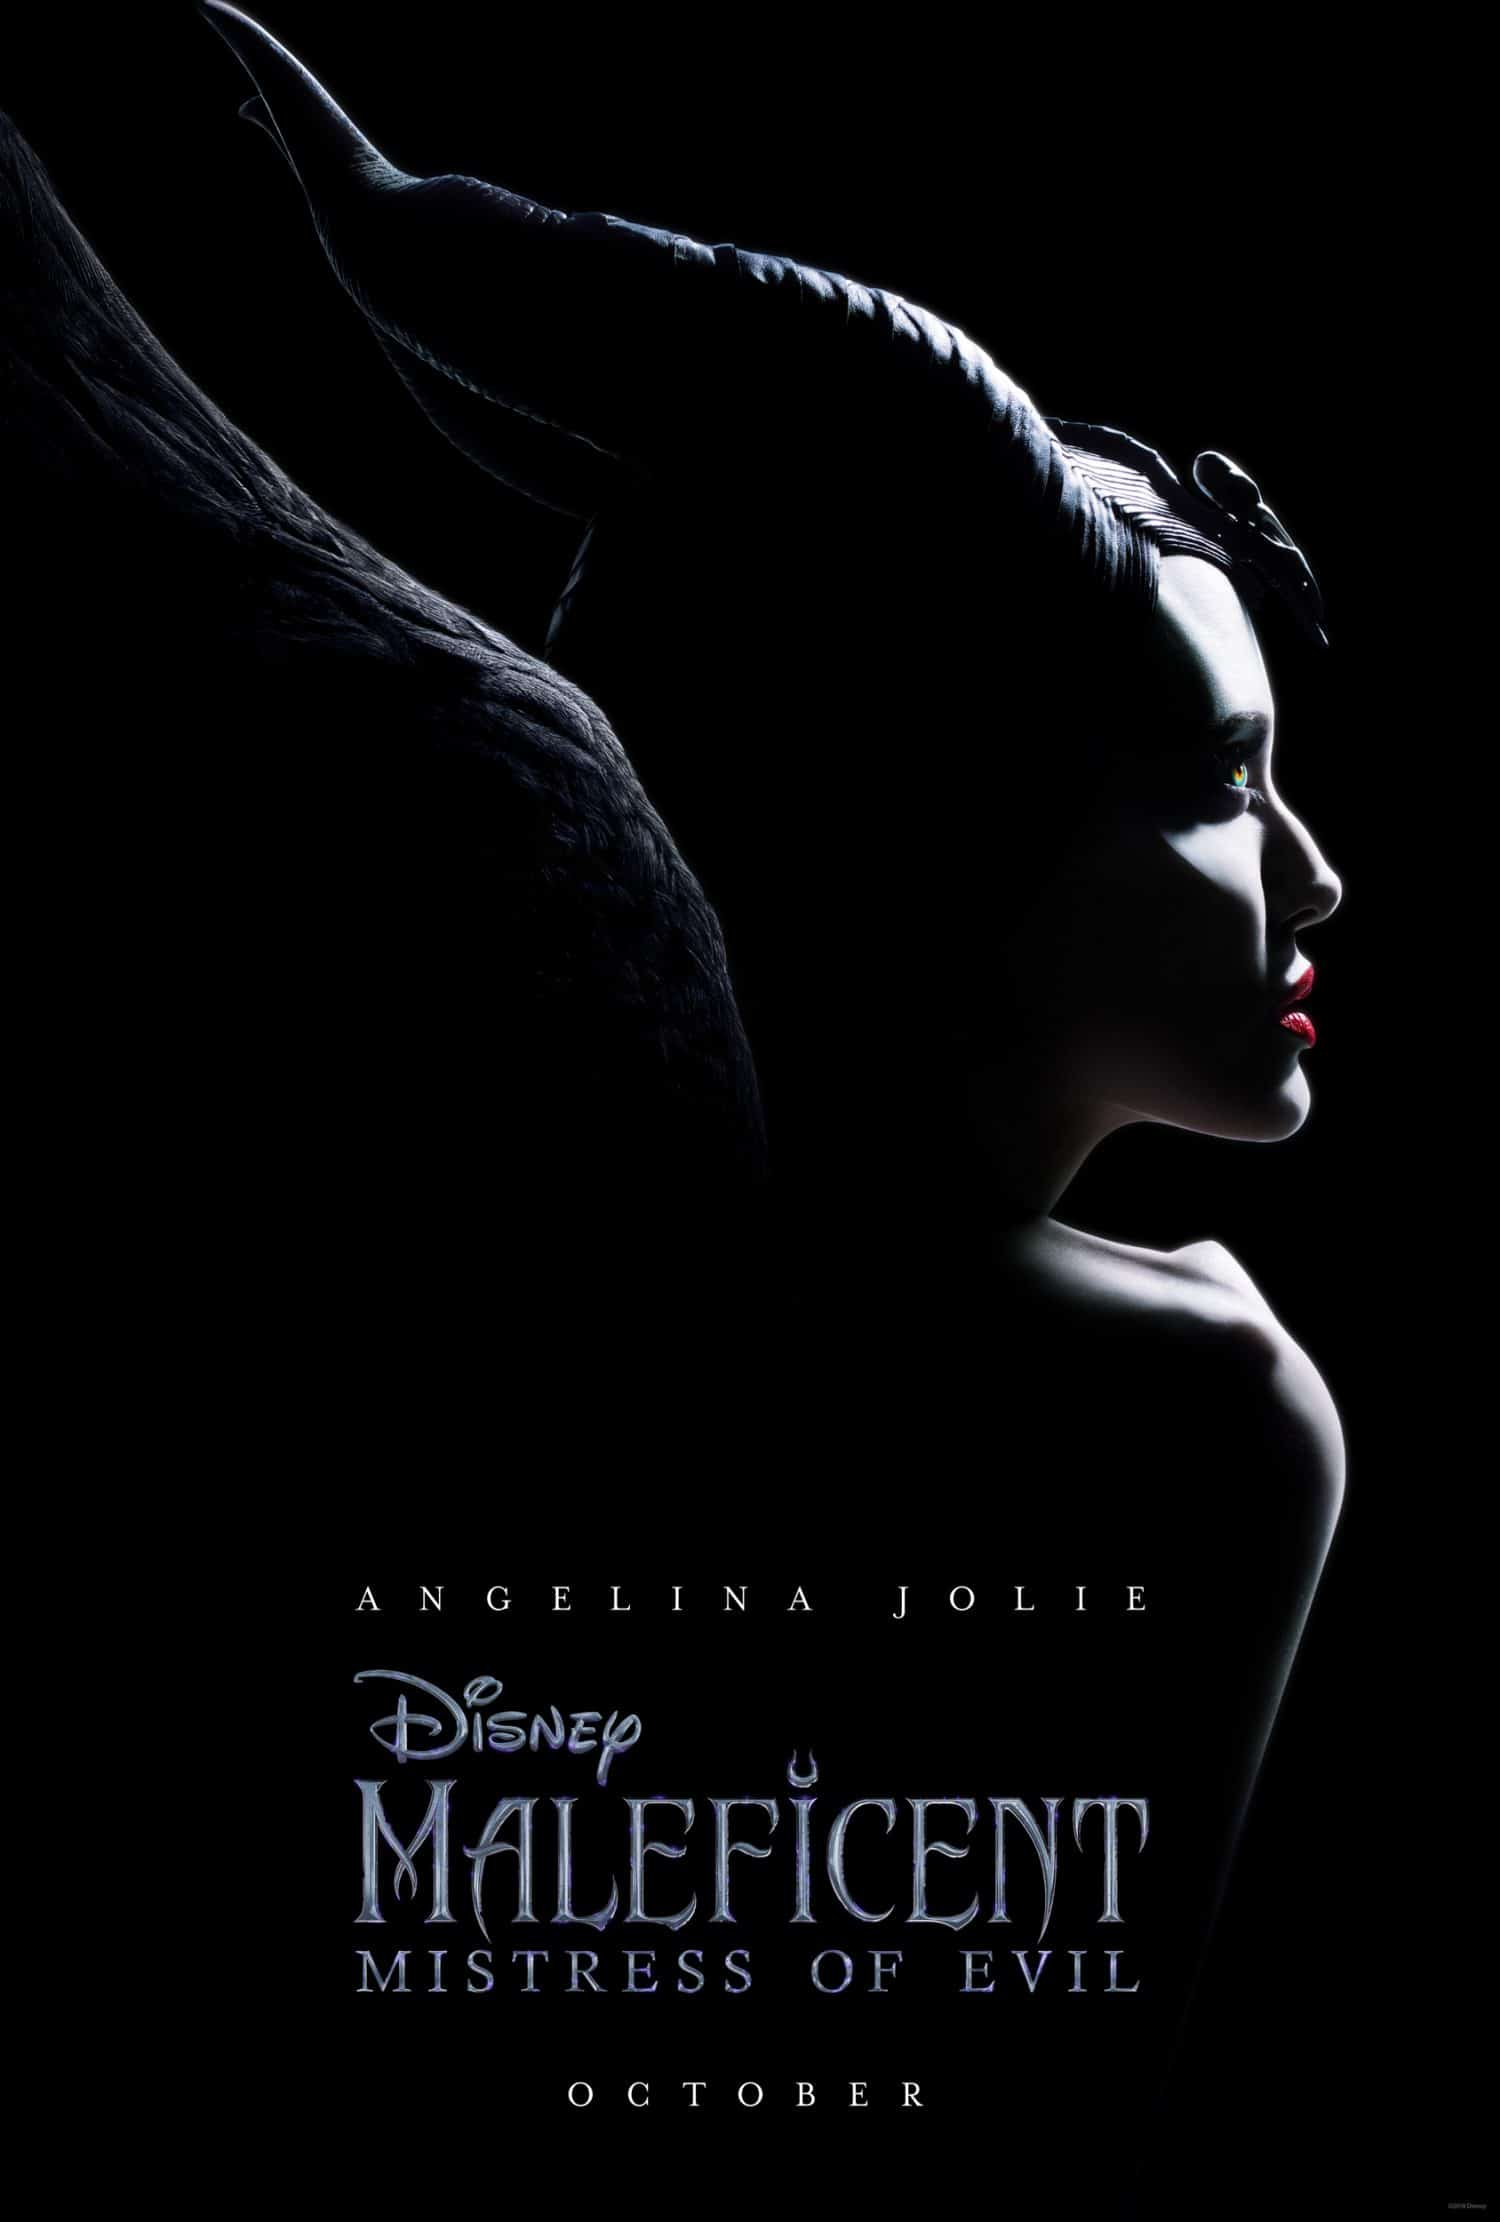 Look for Maleficent: Mistress of Evil to hit theaters in October.